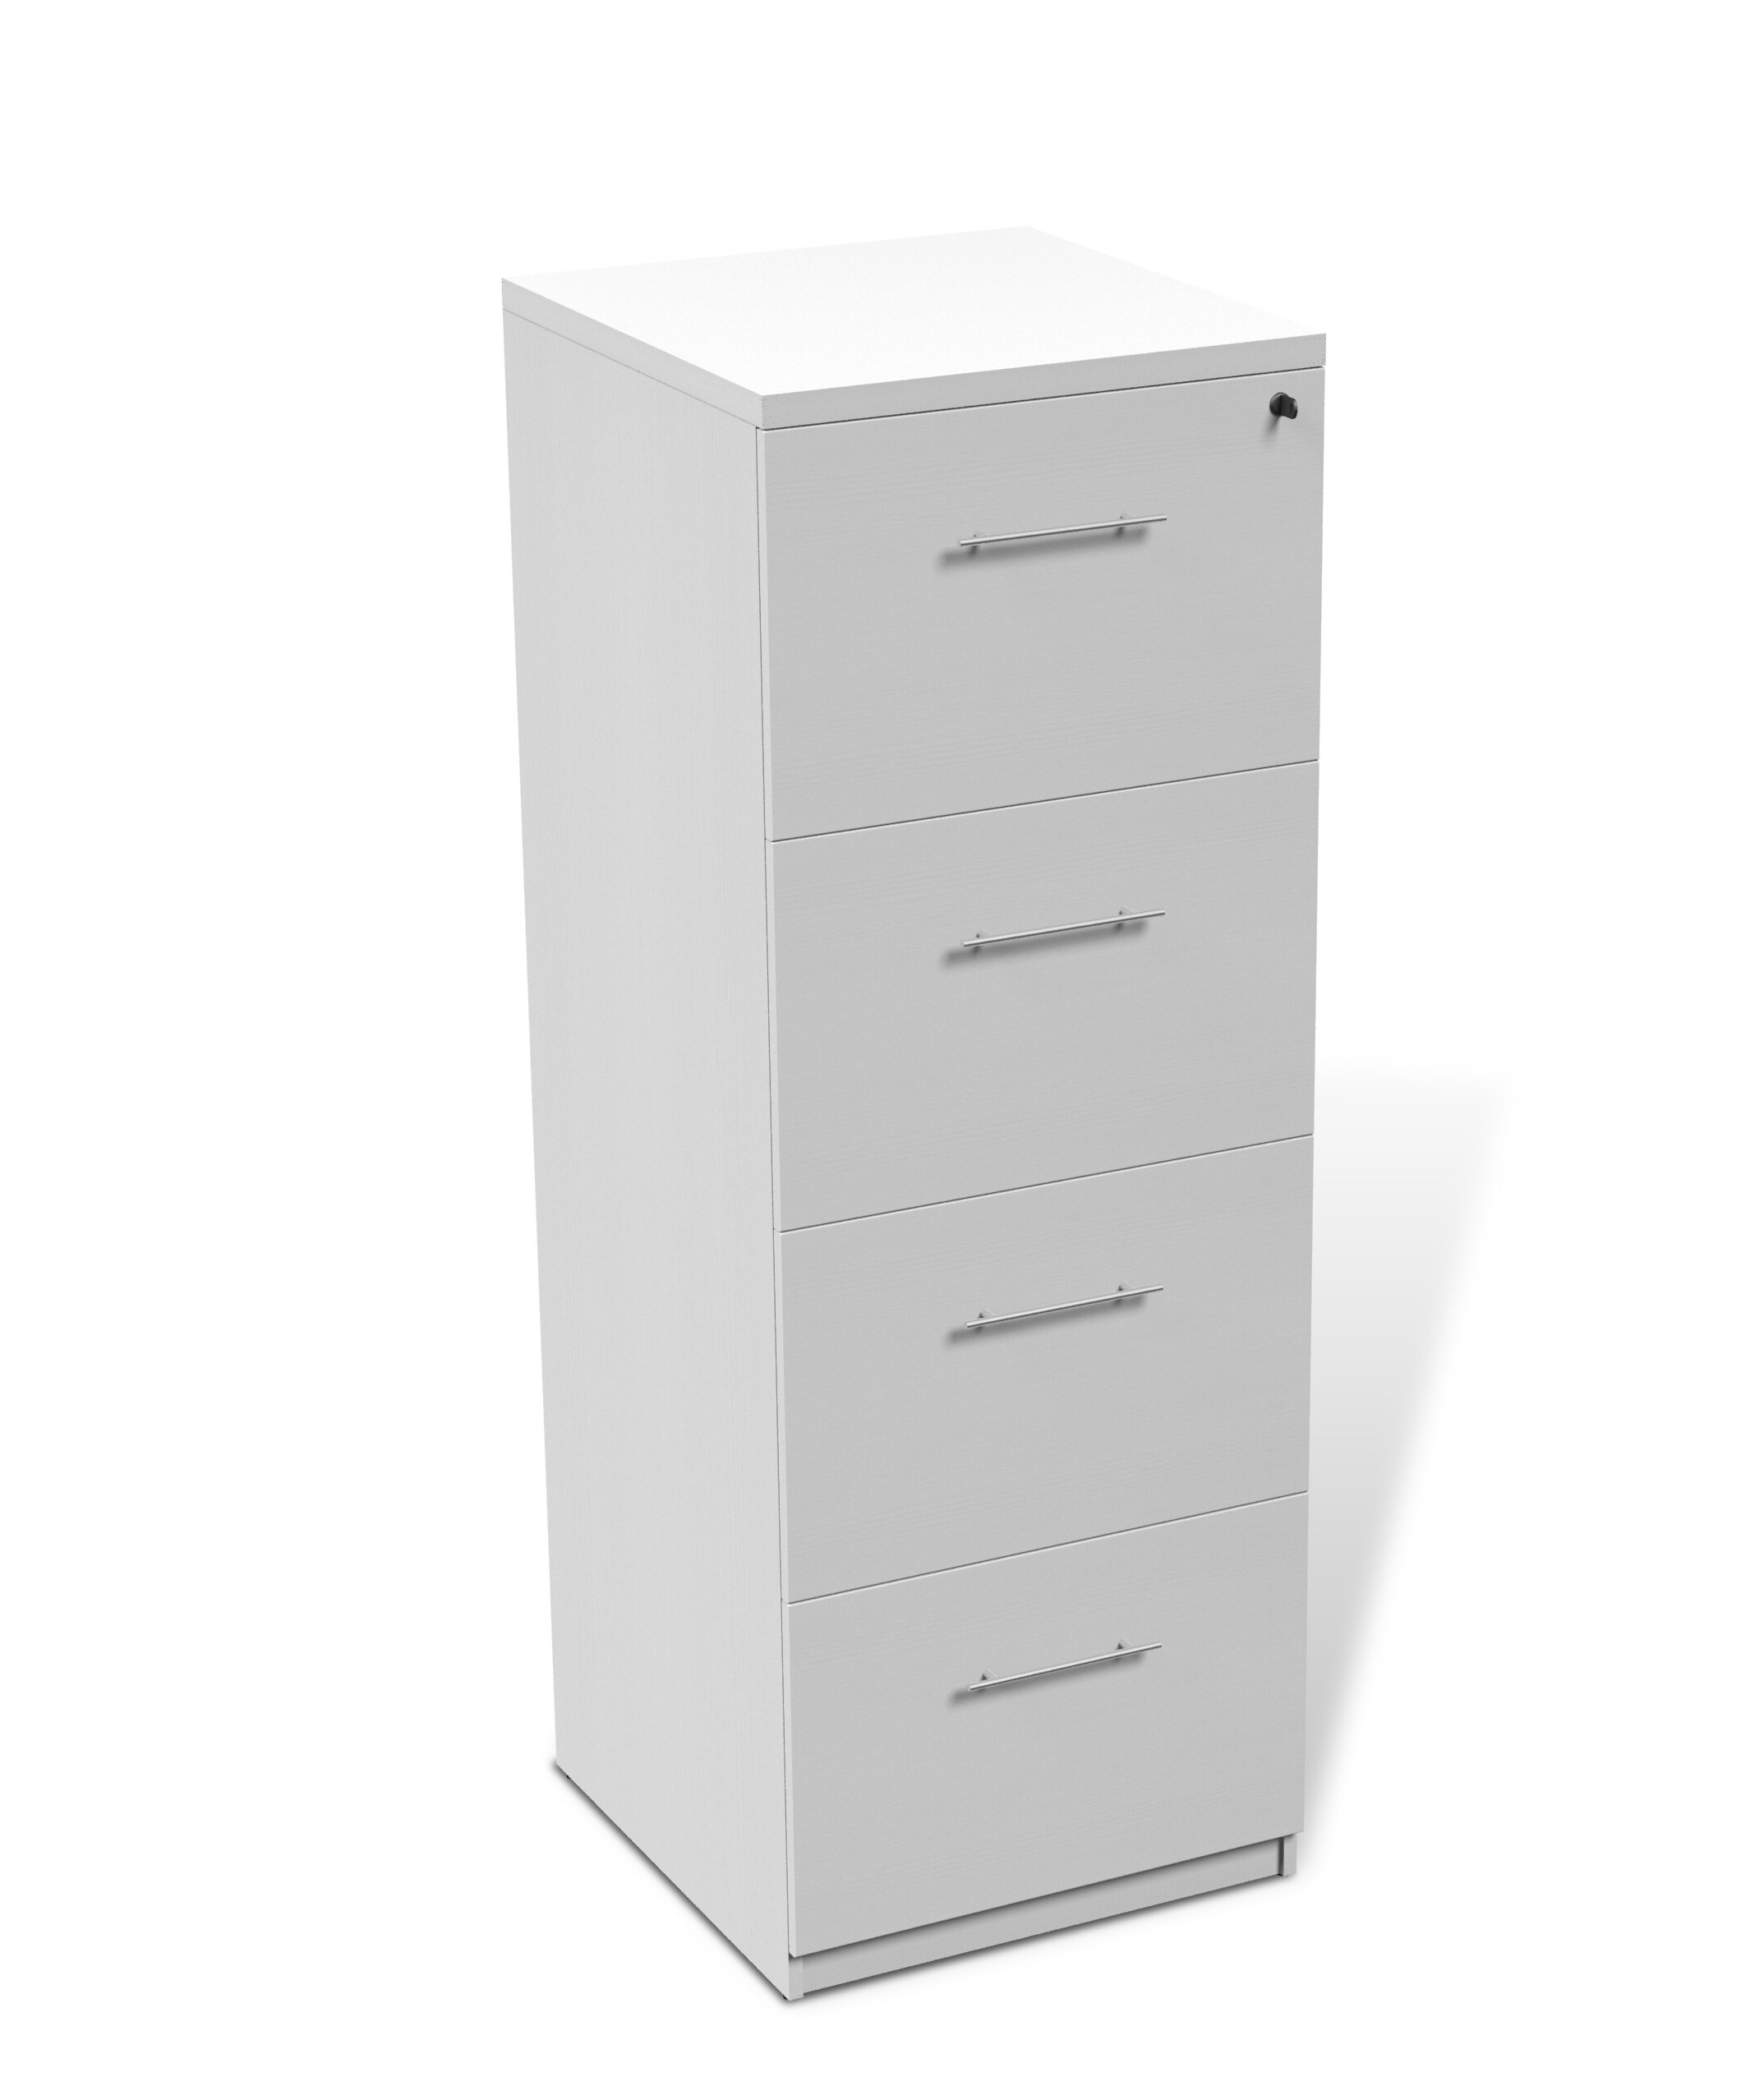 Haaken Furniture Pro X 4 Drawer Filing Cabinet U0026 Reviews | Wayfair